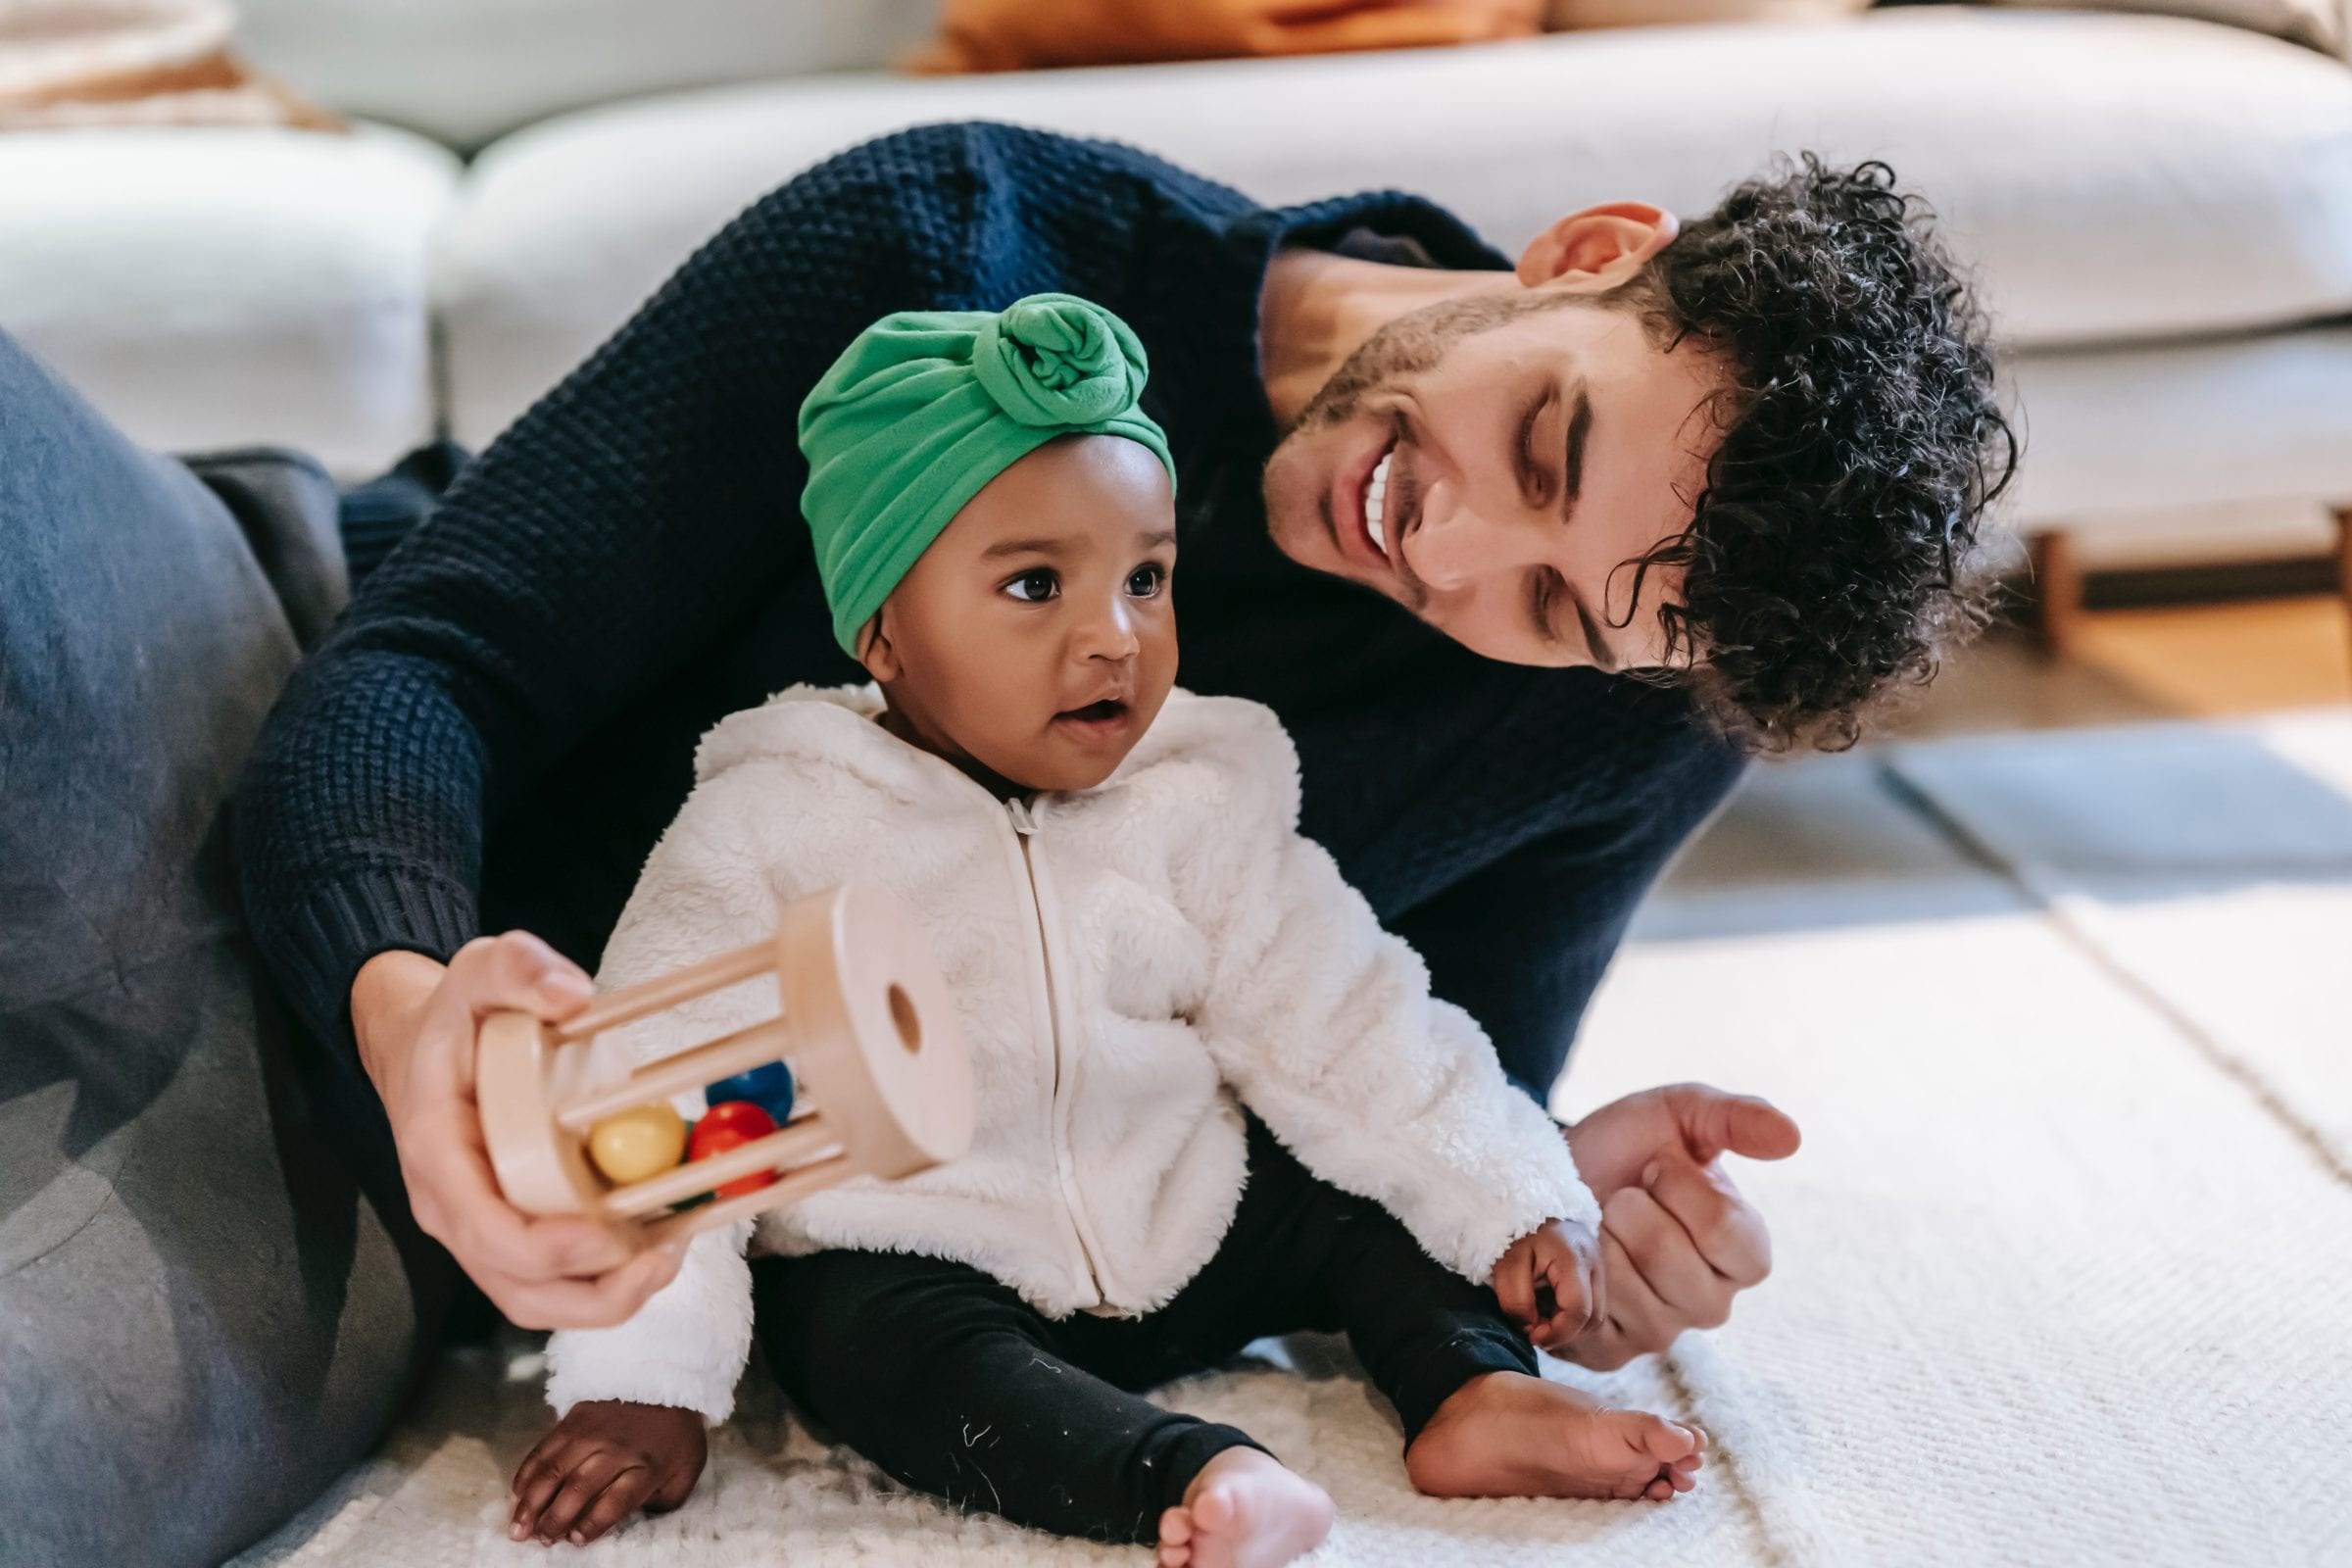 Dad Baby Gear; 13 Epic Must-Haves Every Dad Needs